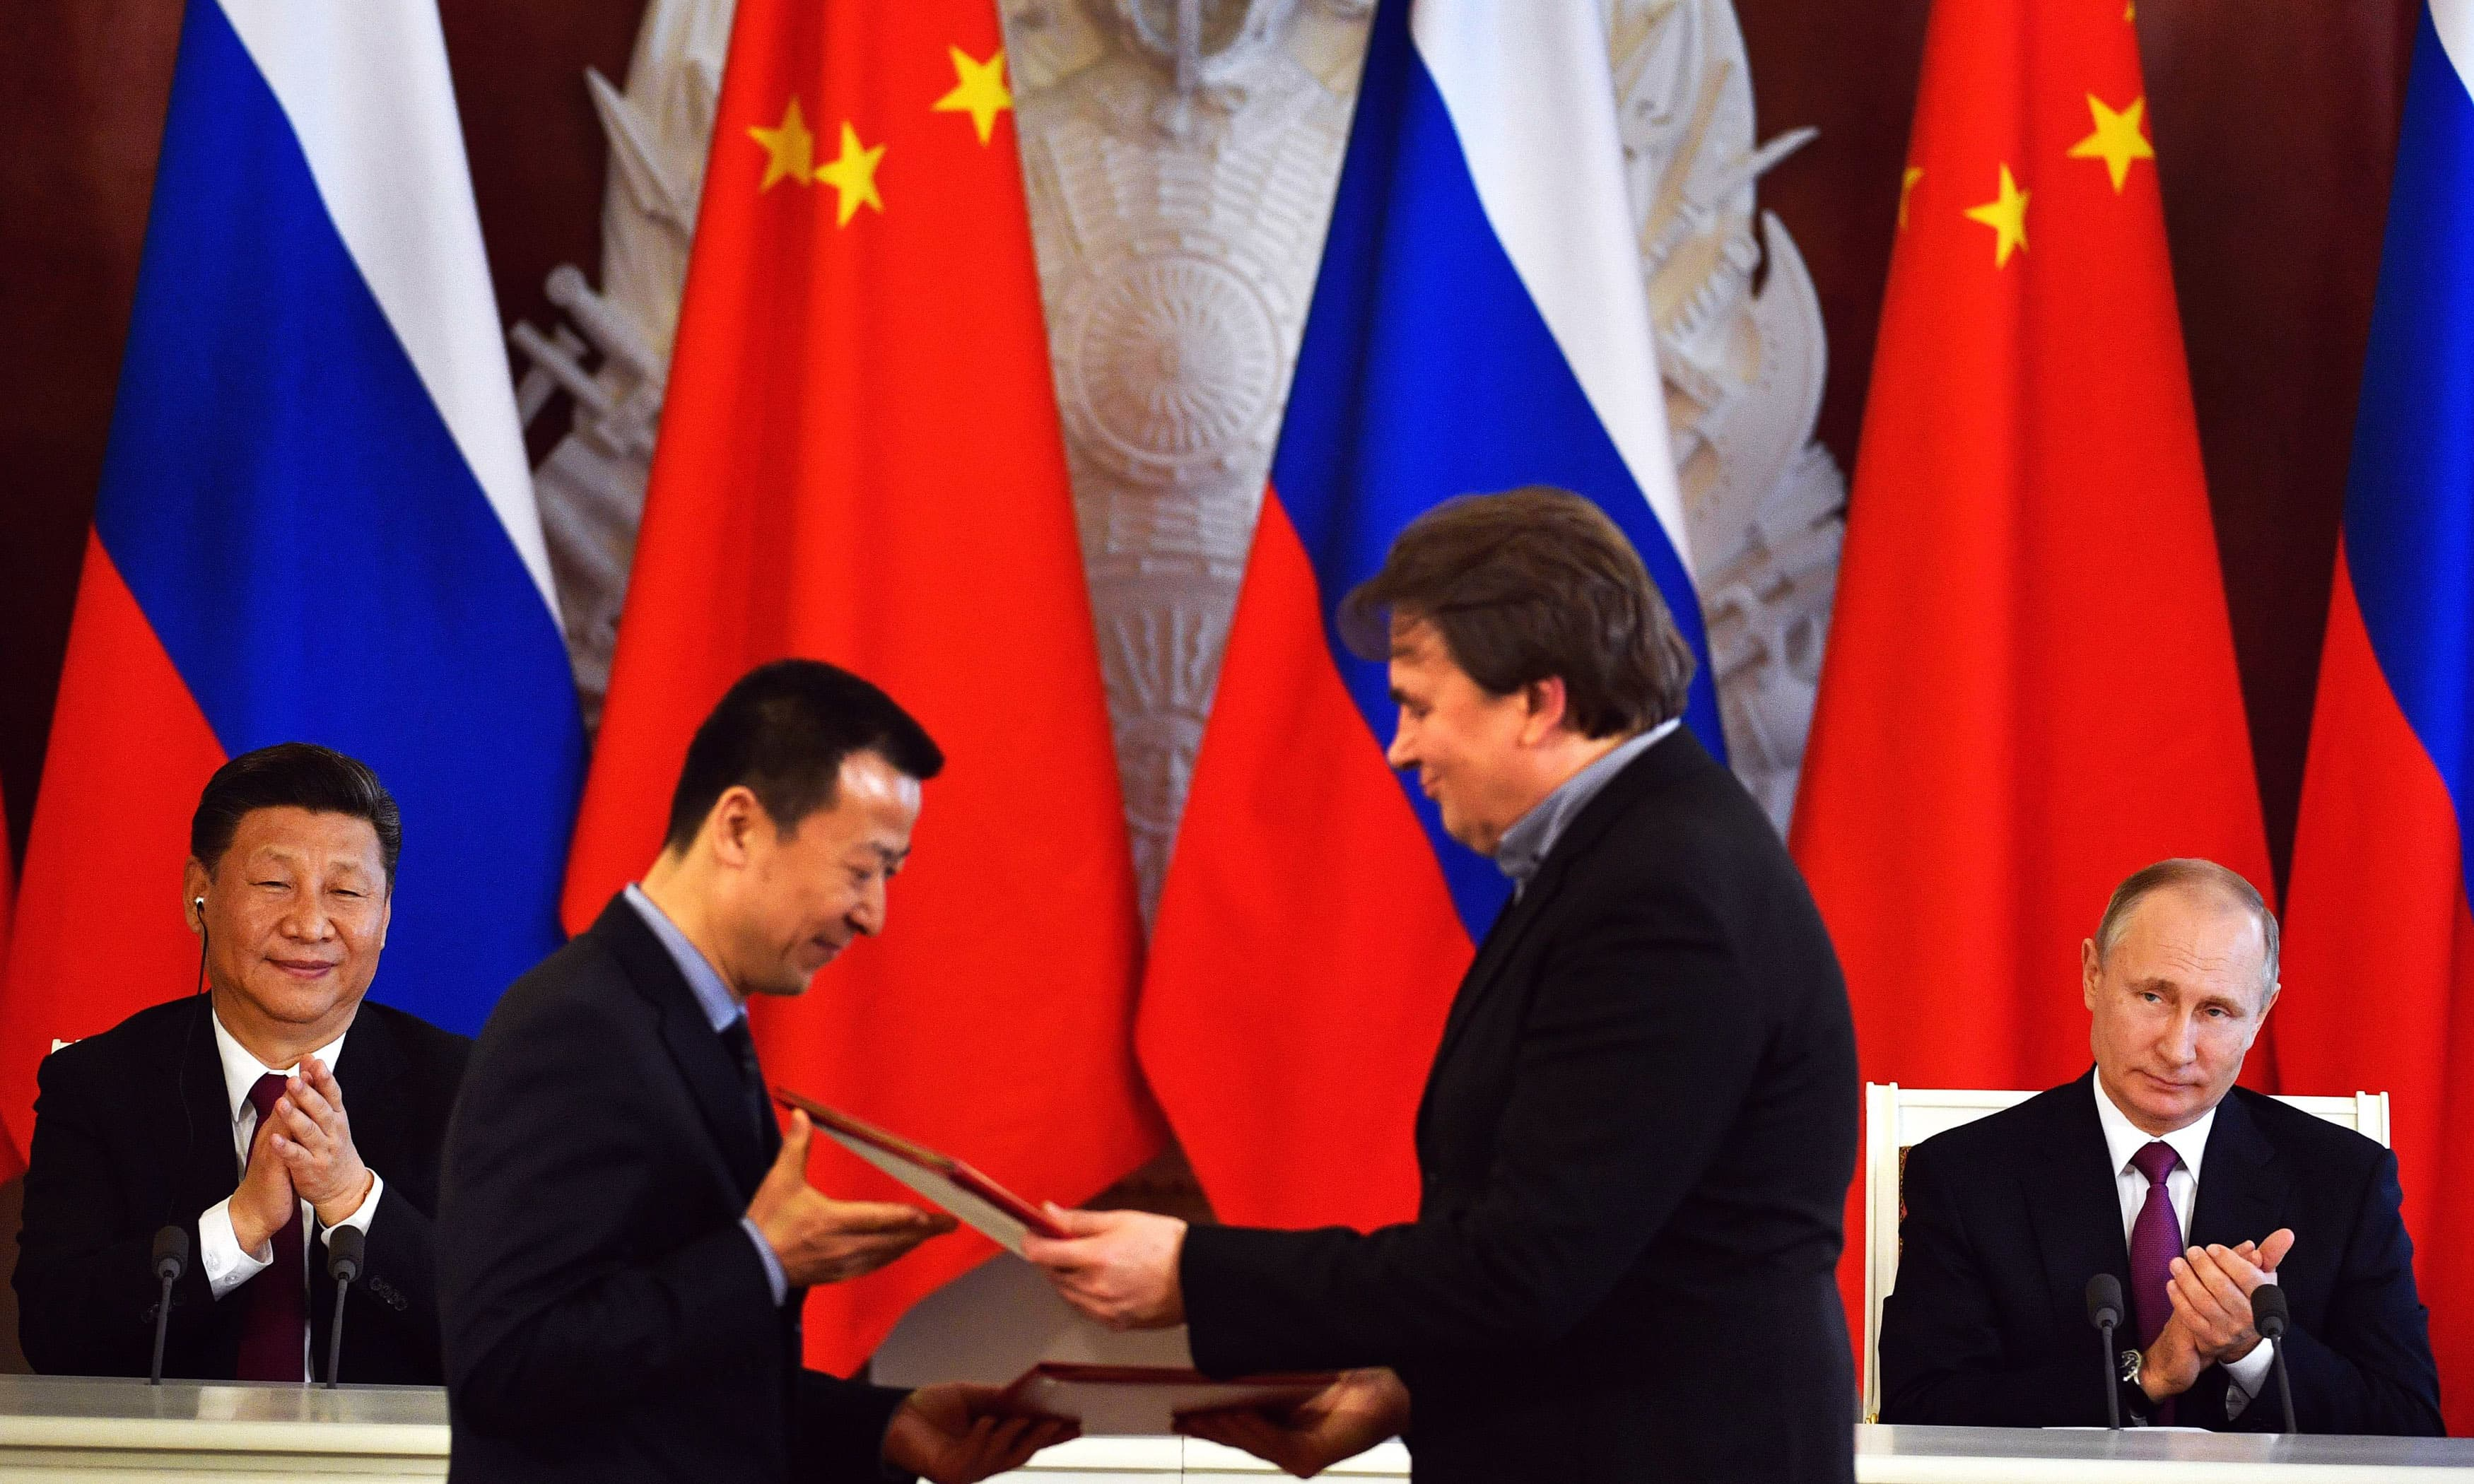 Russia, China agree joint approach to N Korea, slam US over missile shield